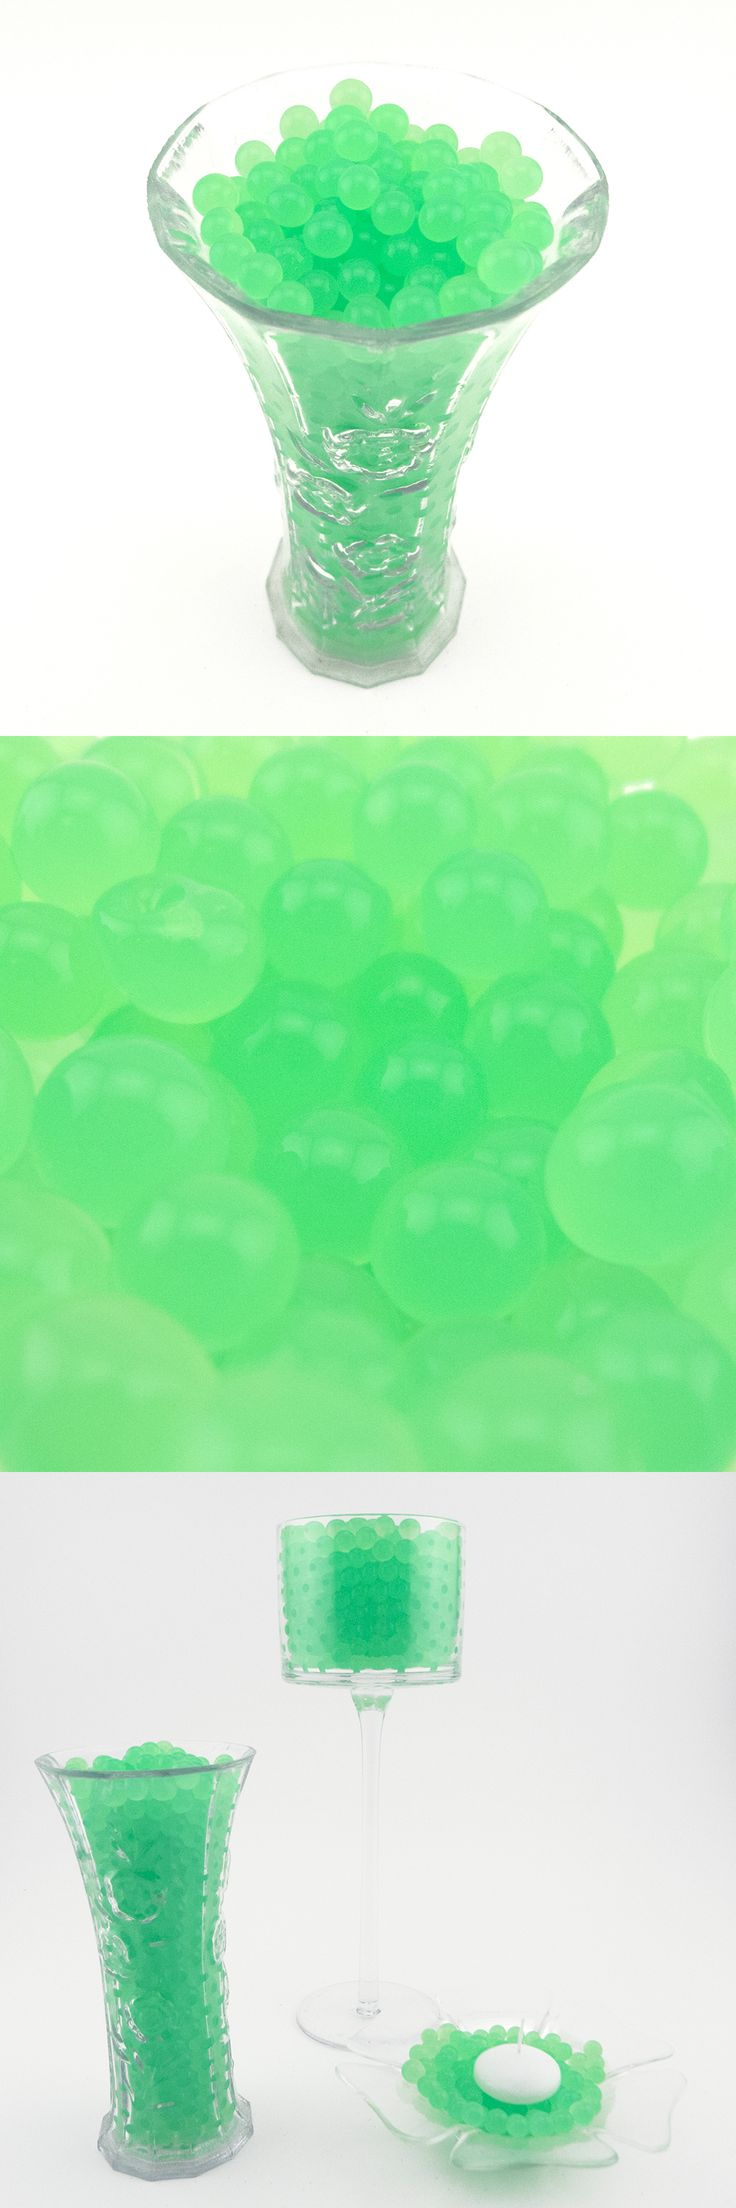 8oz or 1lb Apple Green Water Beads Magic Water Absorbent Pearls Gel Jelly Balls Crystal Soil Aqua Gems Sensory Therapy #ifavorsupplies #themedparty #wedding